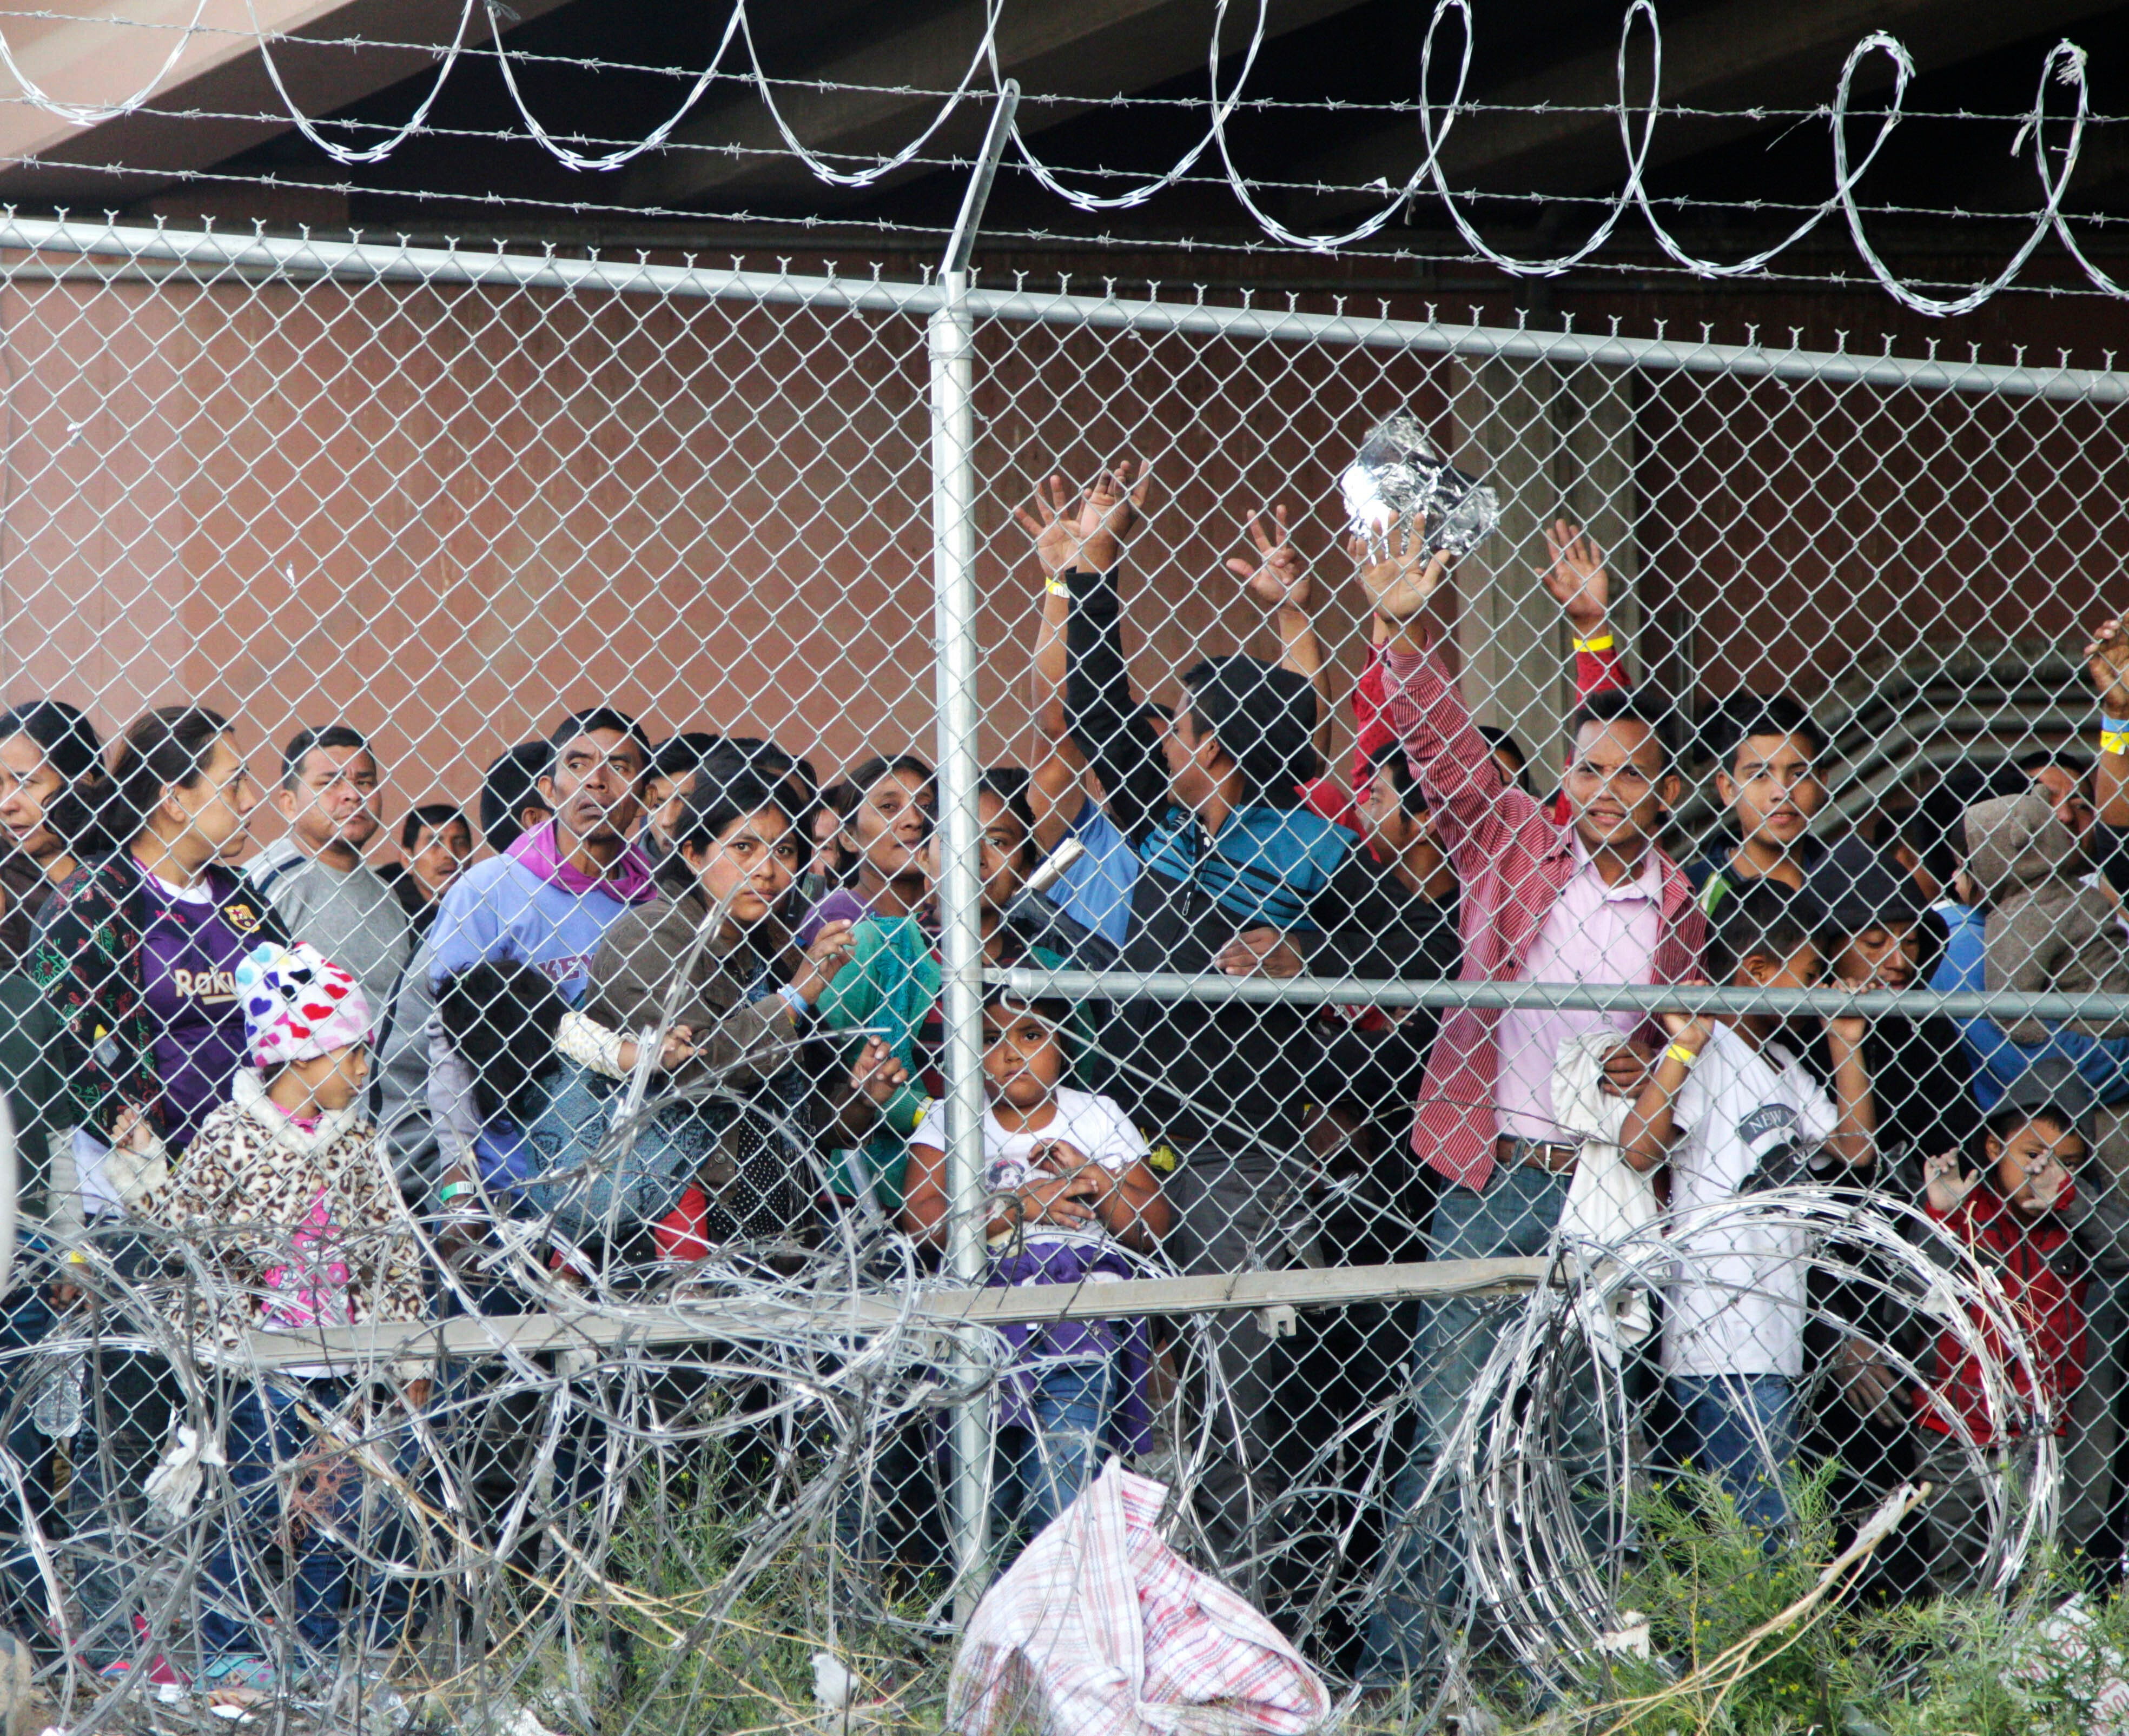 Surge of unaccompanied minors at border poses challenge for Biden administration